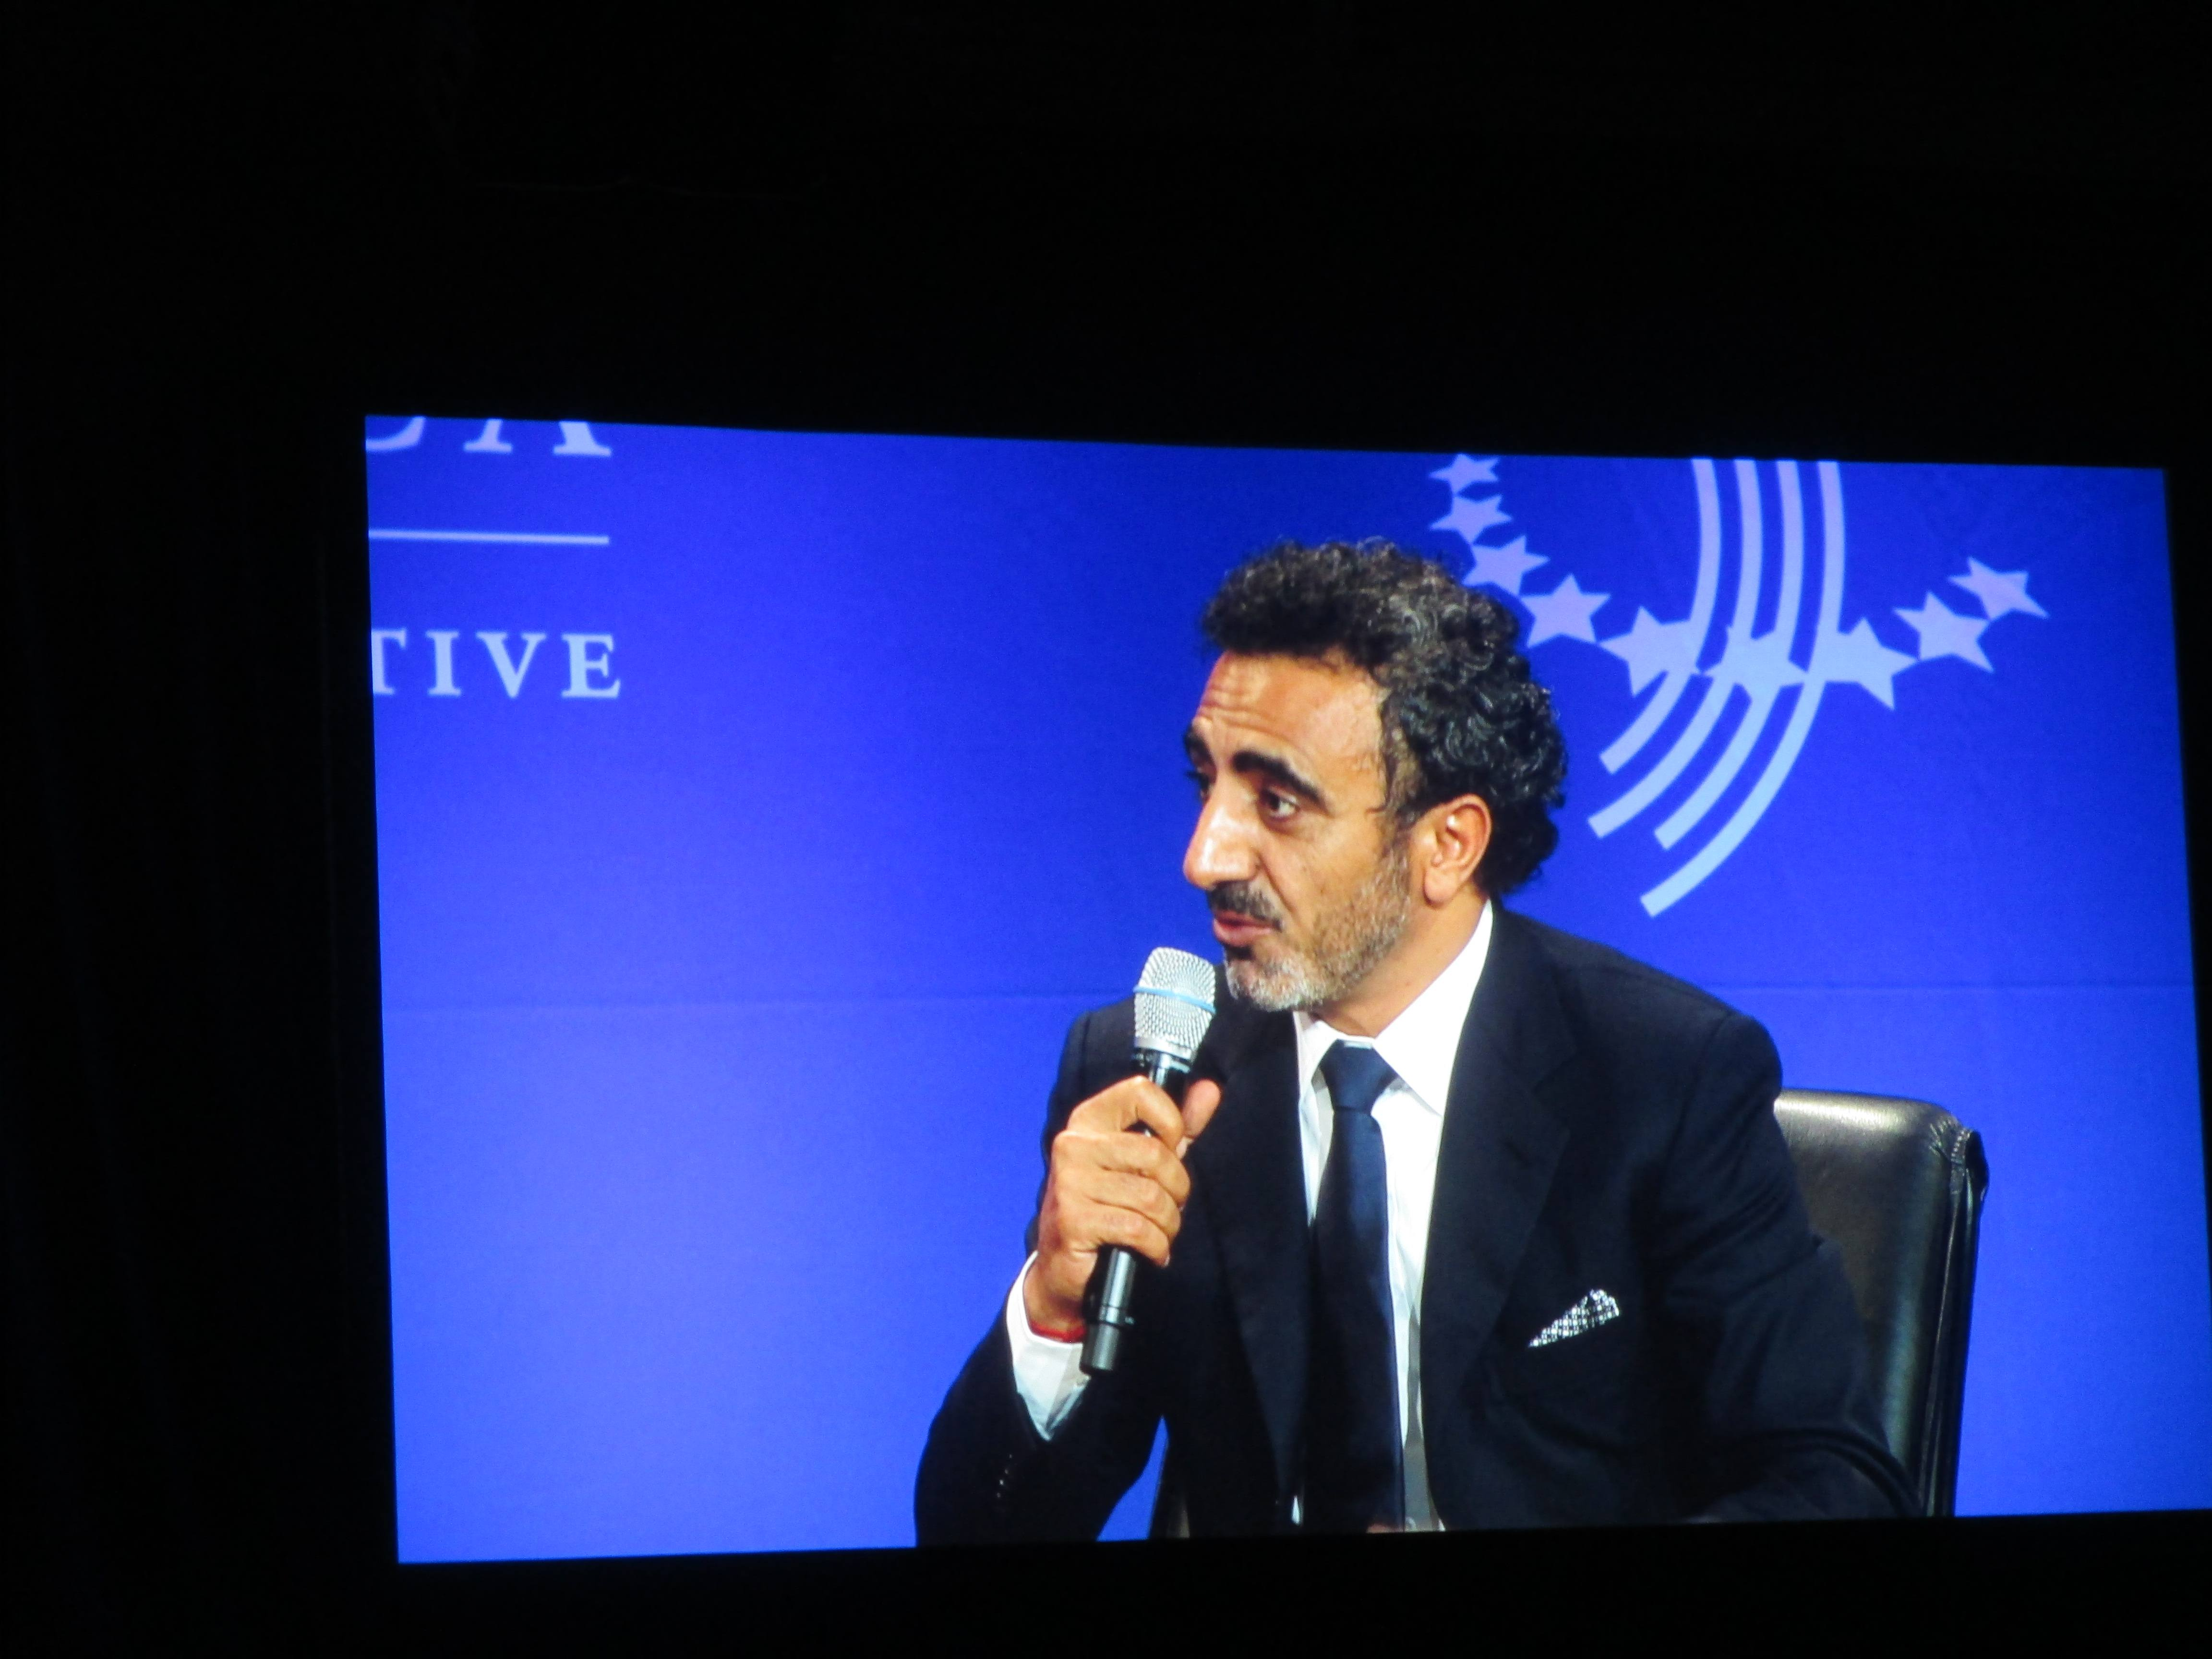 Founder of Chobani Yogurt, Hamdi Ulukaya